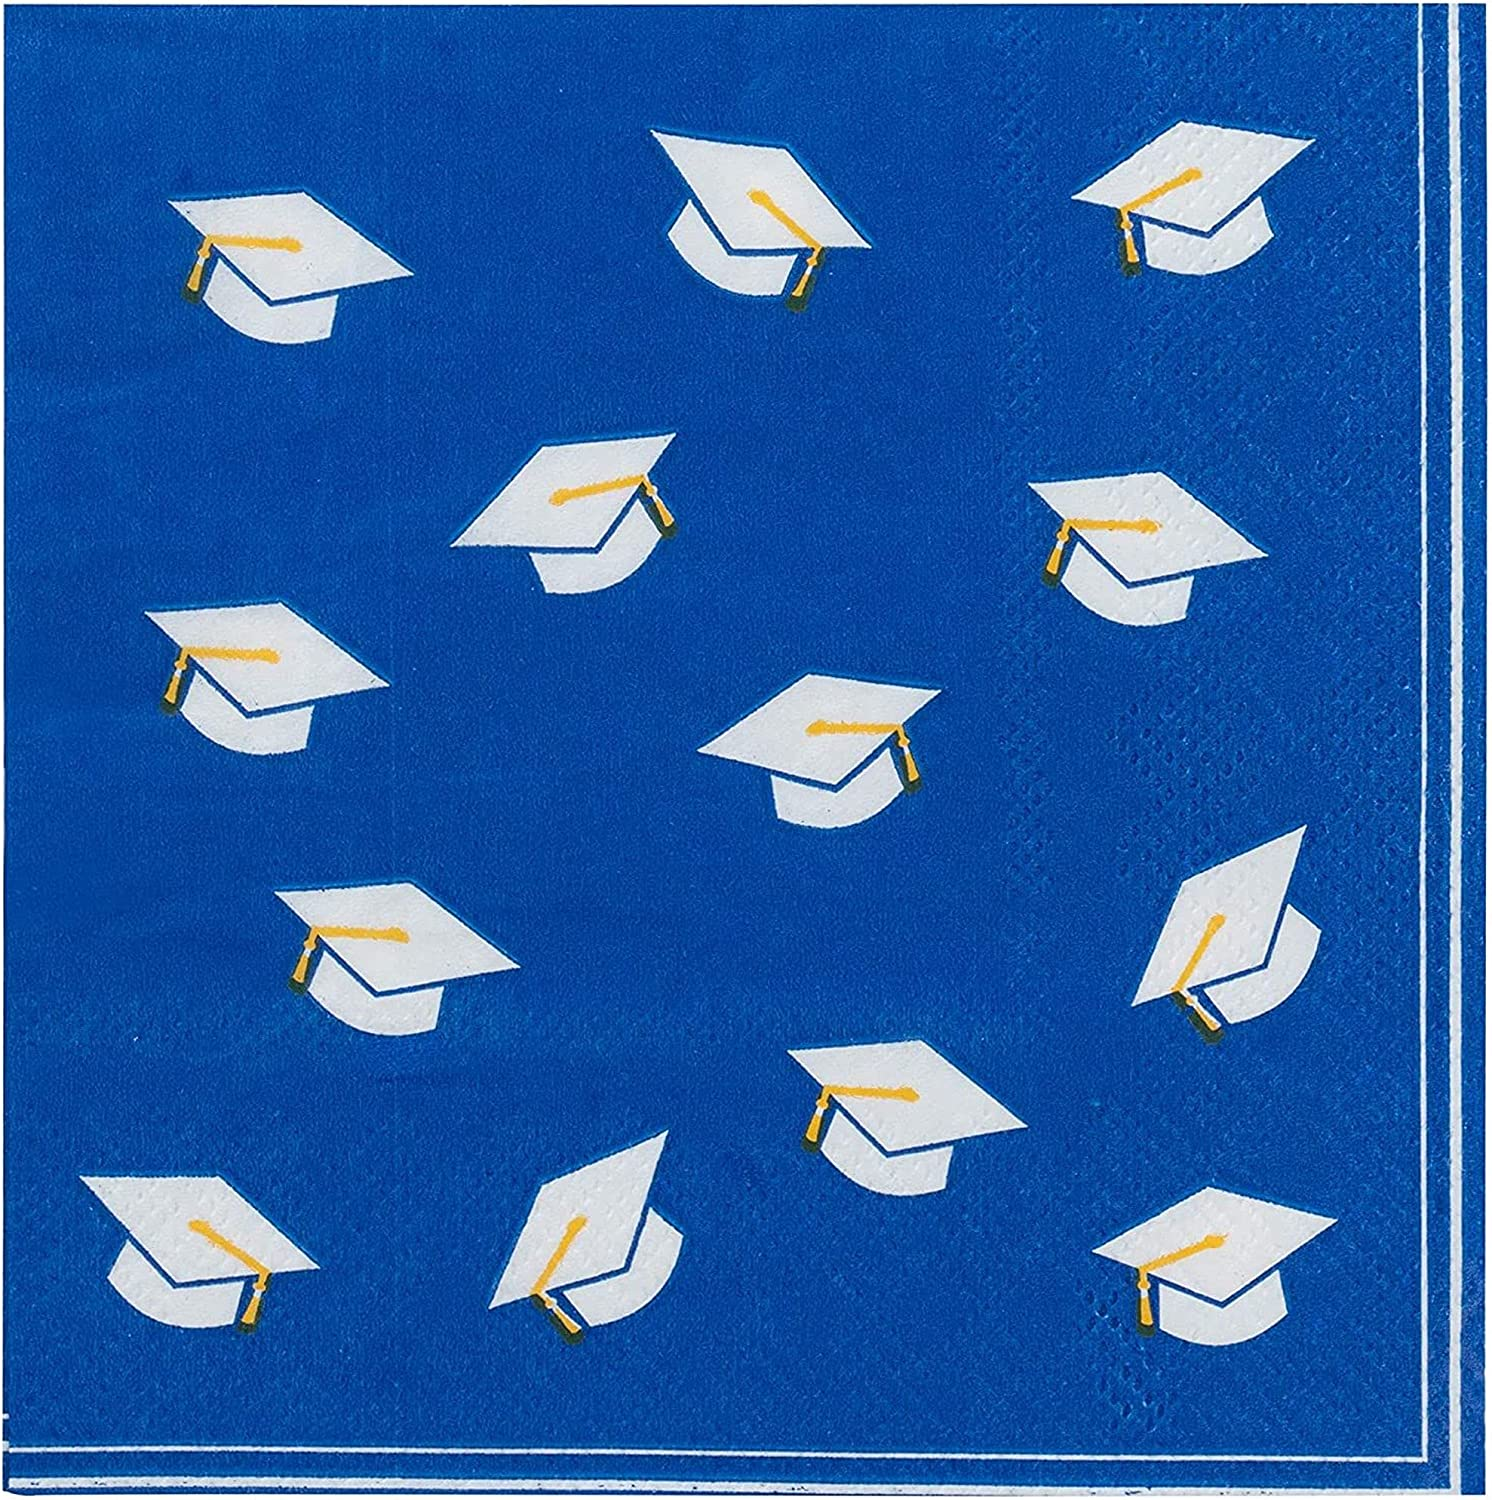 Blue Cocktail Napkins for Graduation Party Supplies (5 x 5 Inches, 100 Pack)